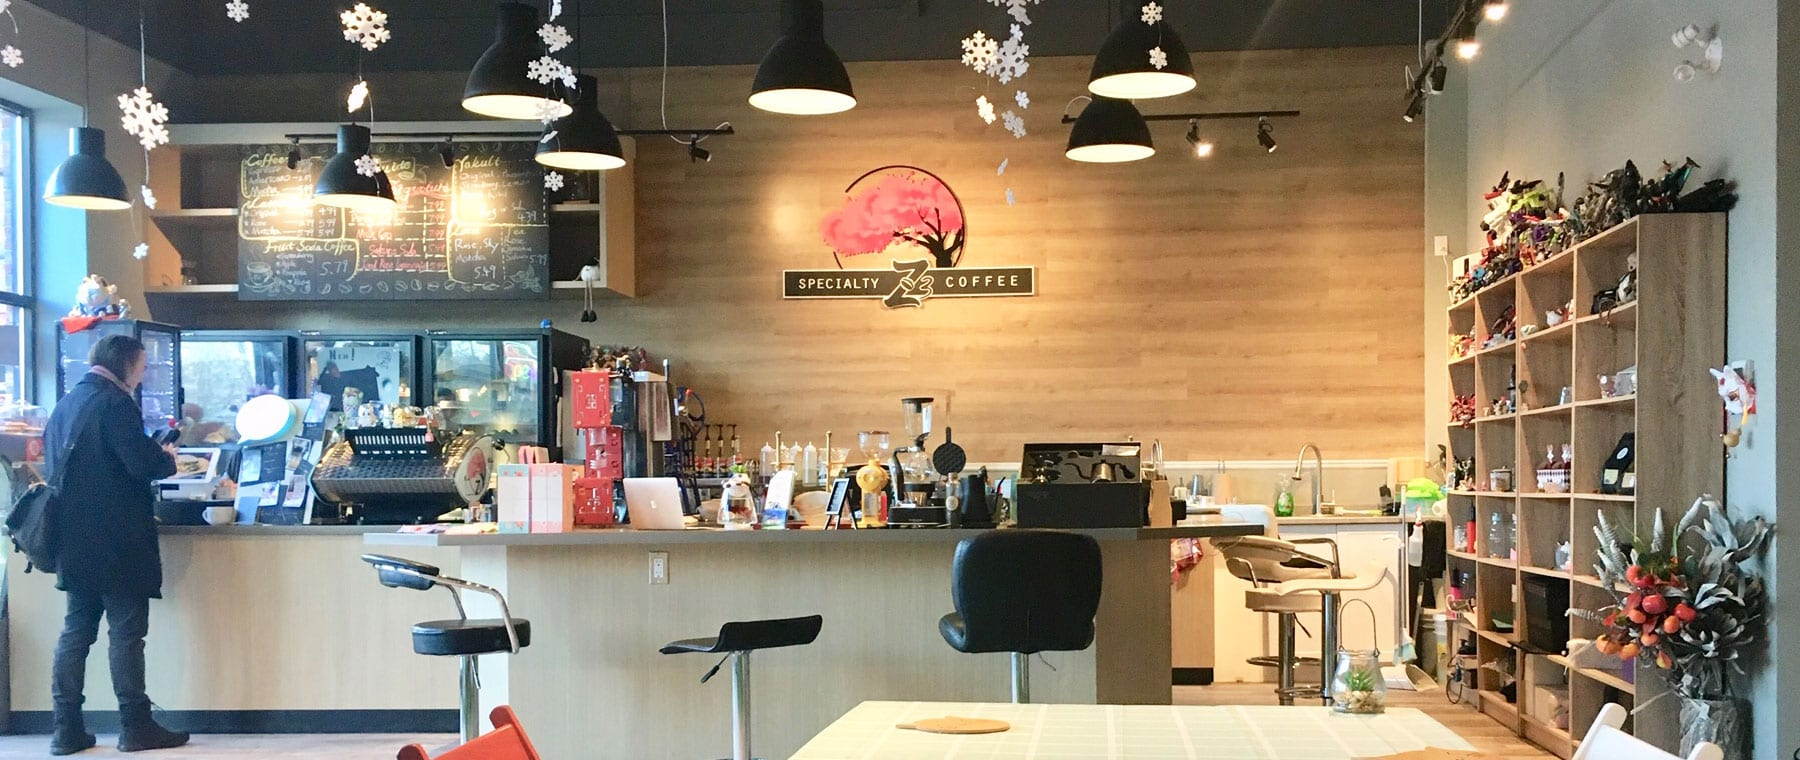 Z3 Specialty Coffee serves unique Japanese drinks in pretty Kanata space